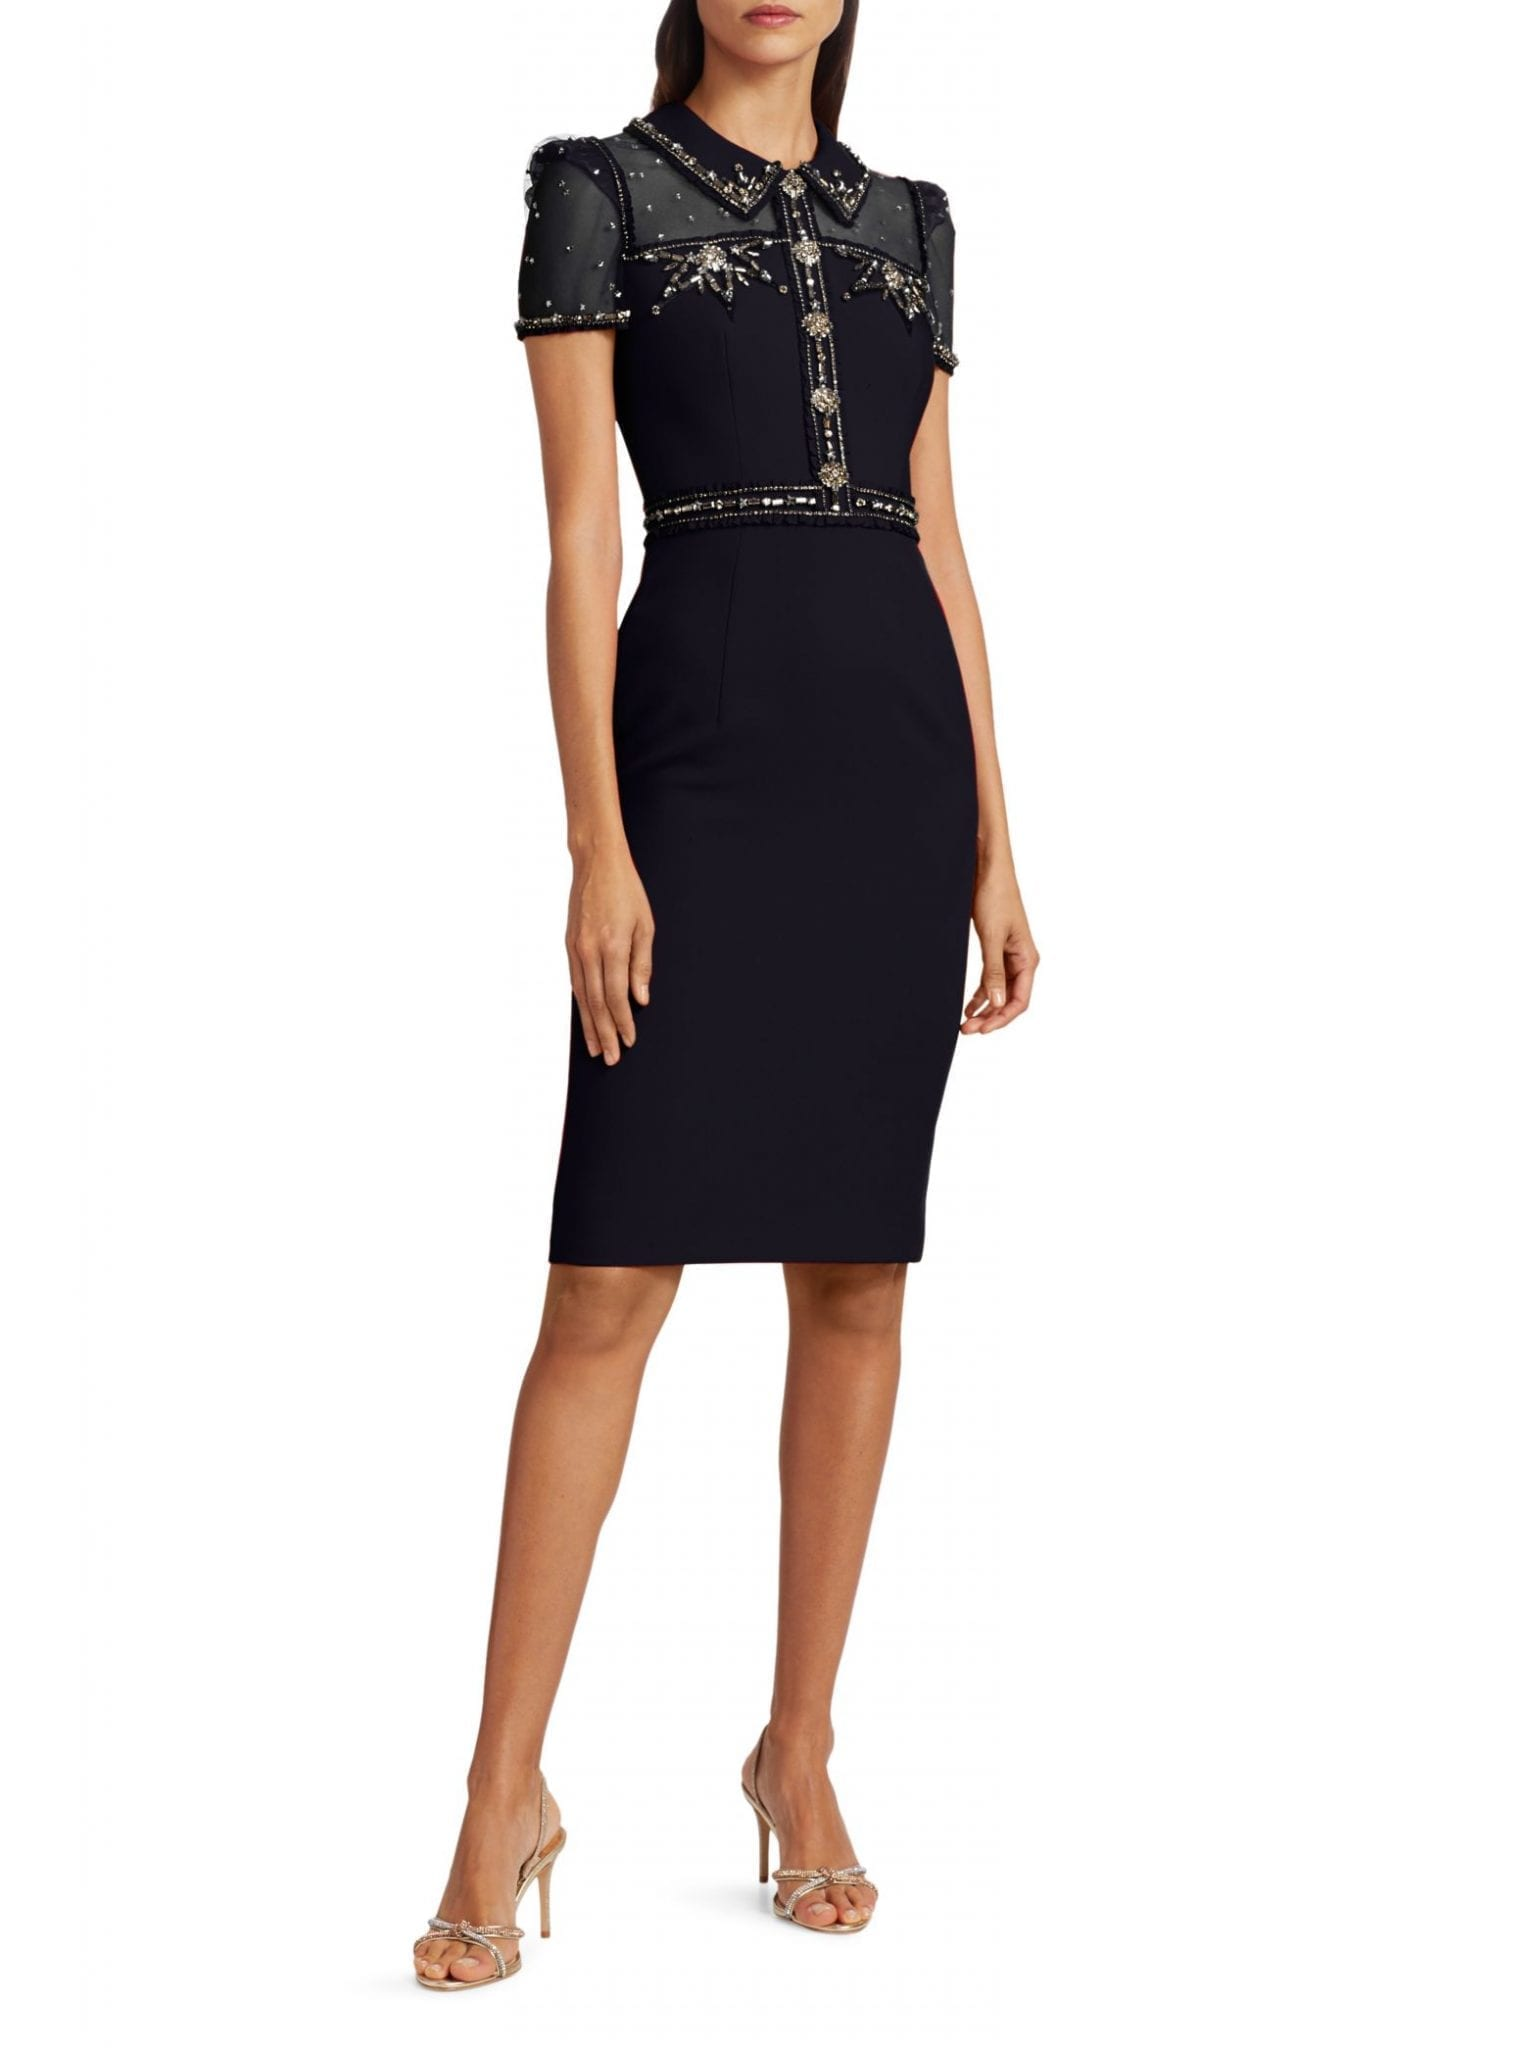 JENNY PACKHAM Dolly Illusion Collared Crepe Cocktail Dress